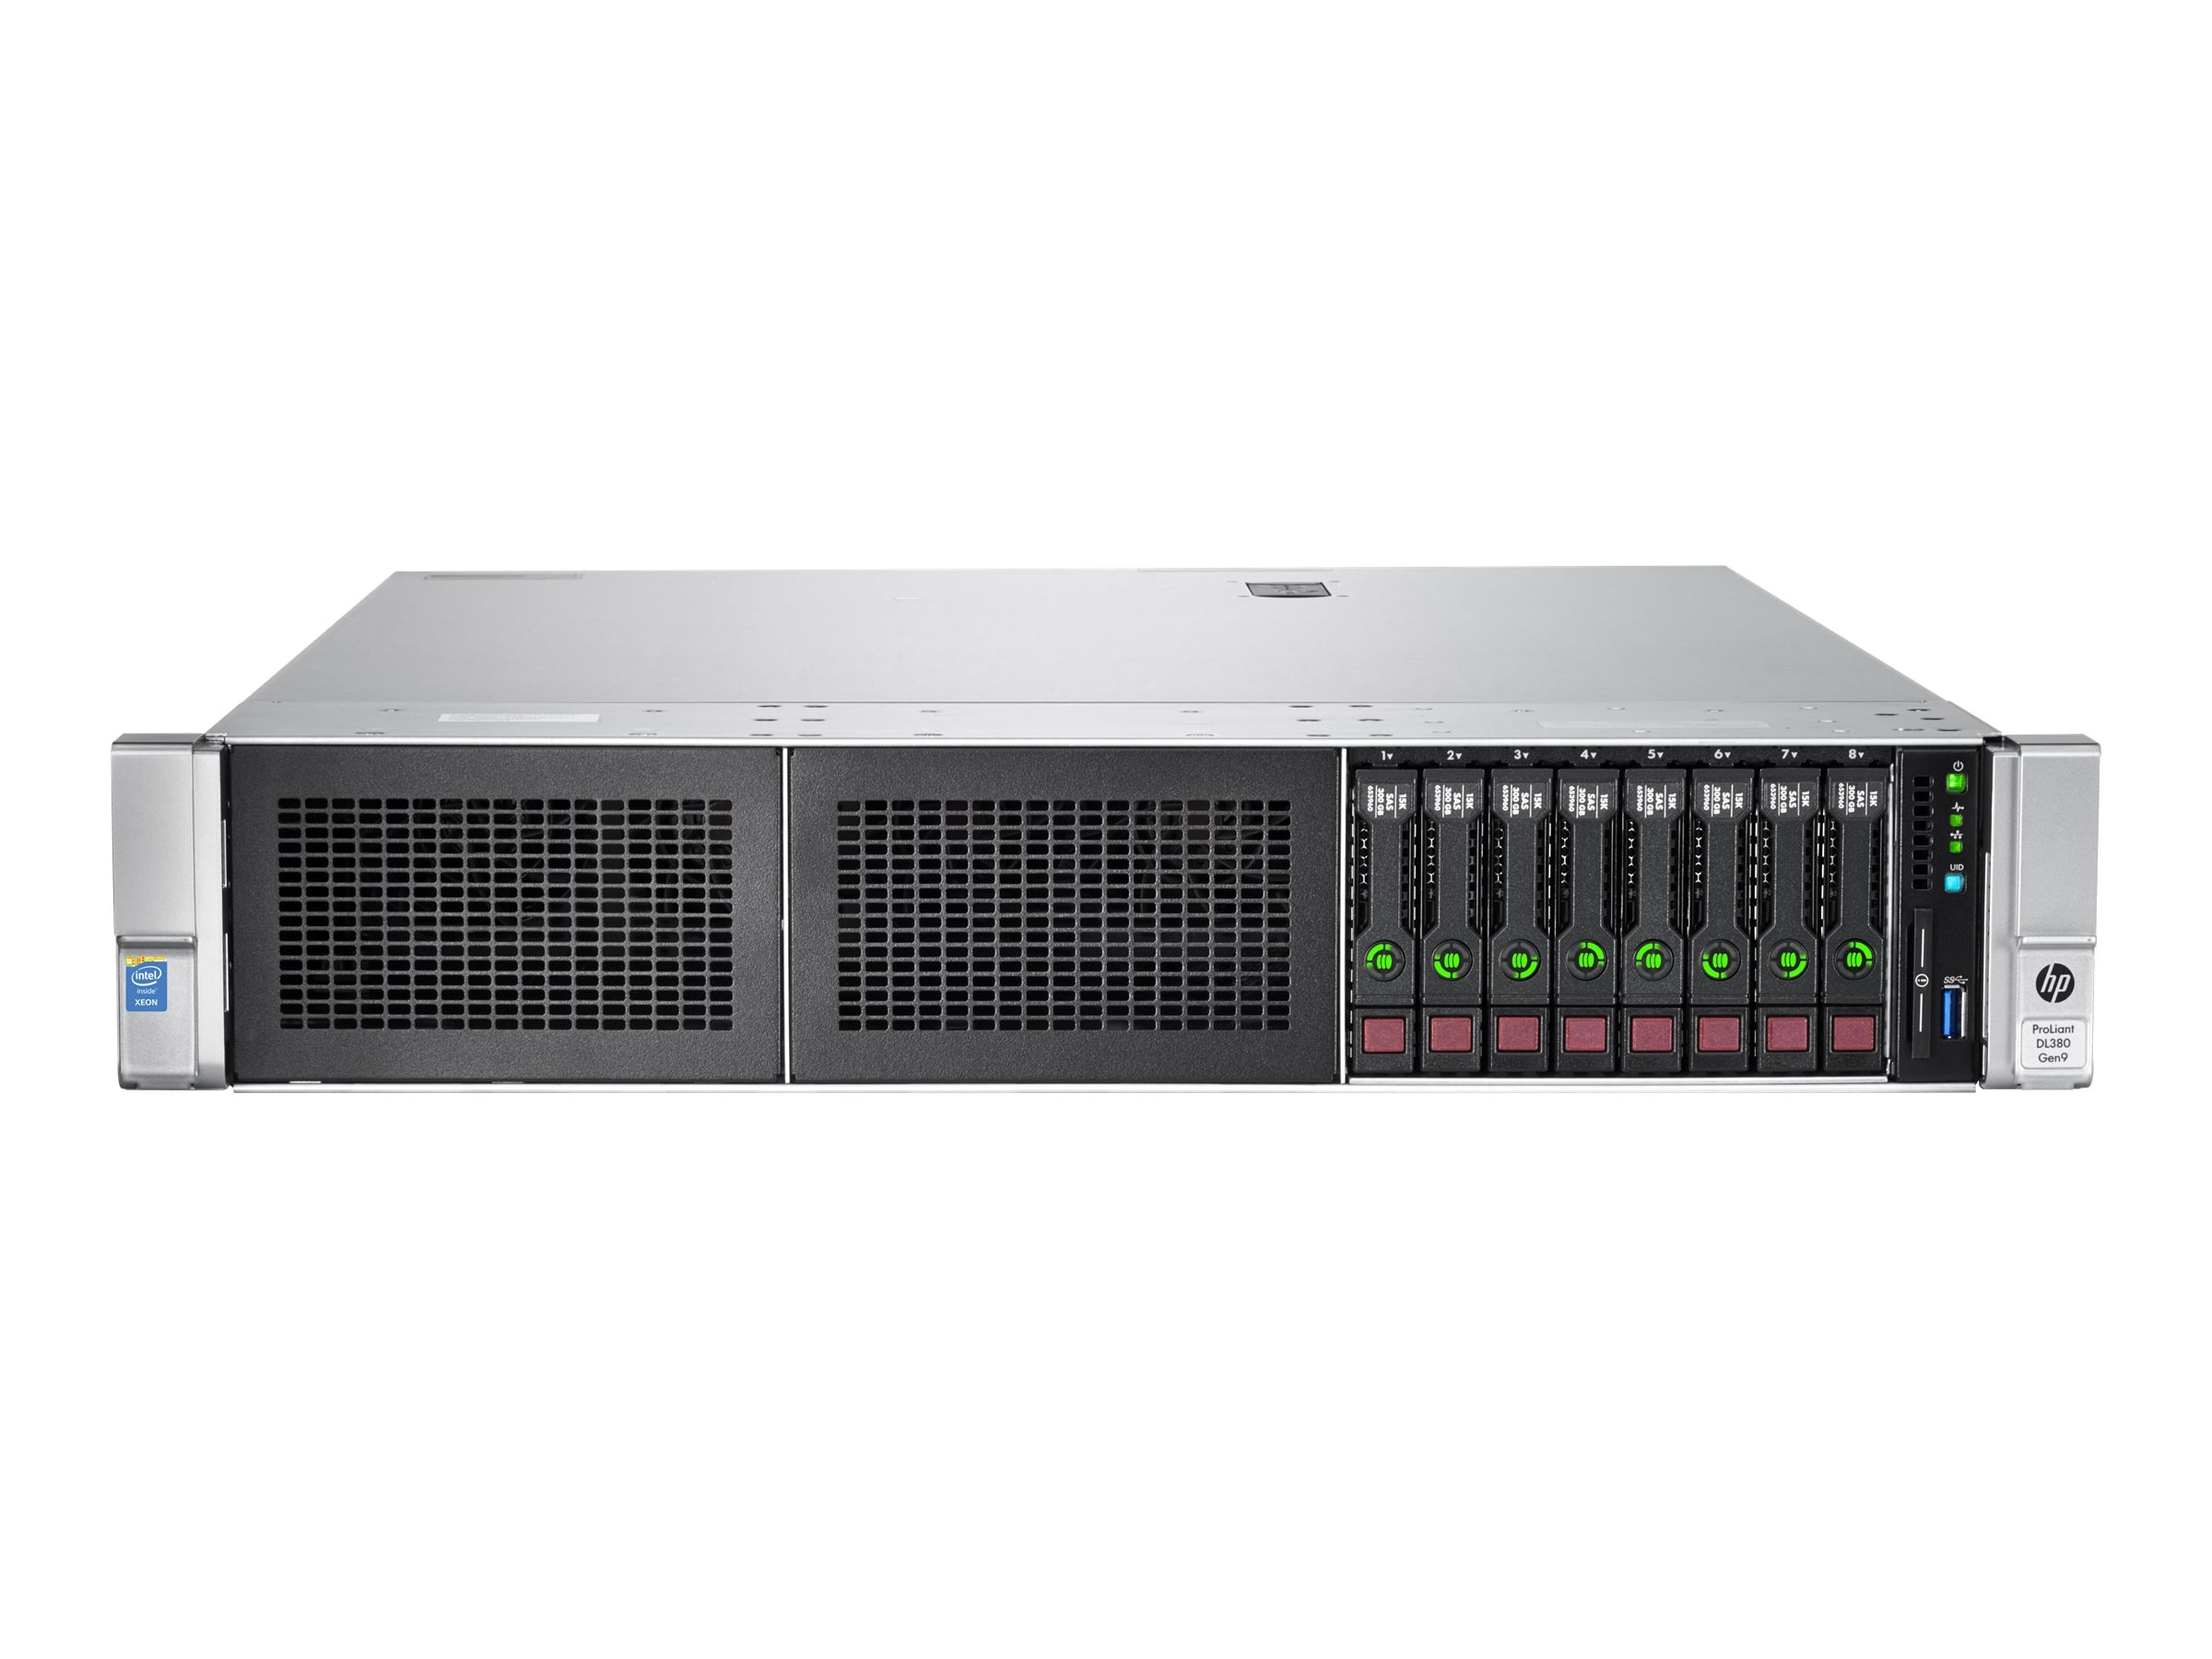 Hewlett Packard Enterprise 850519-S01 Image 1